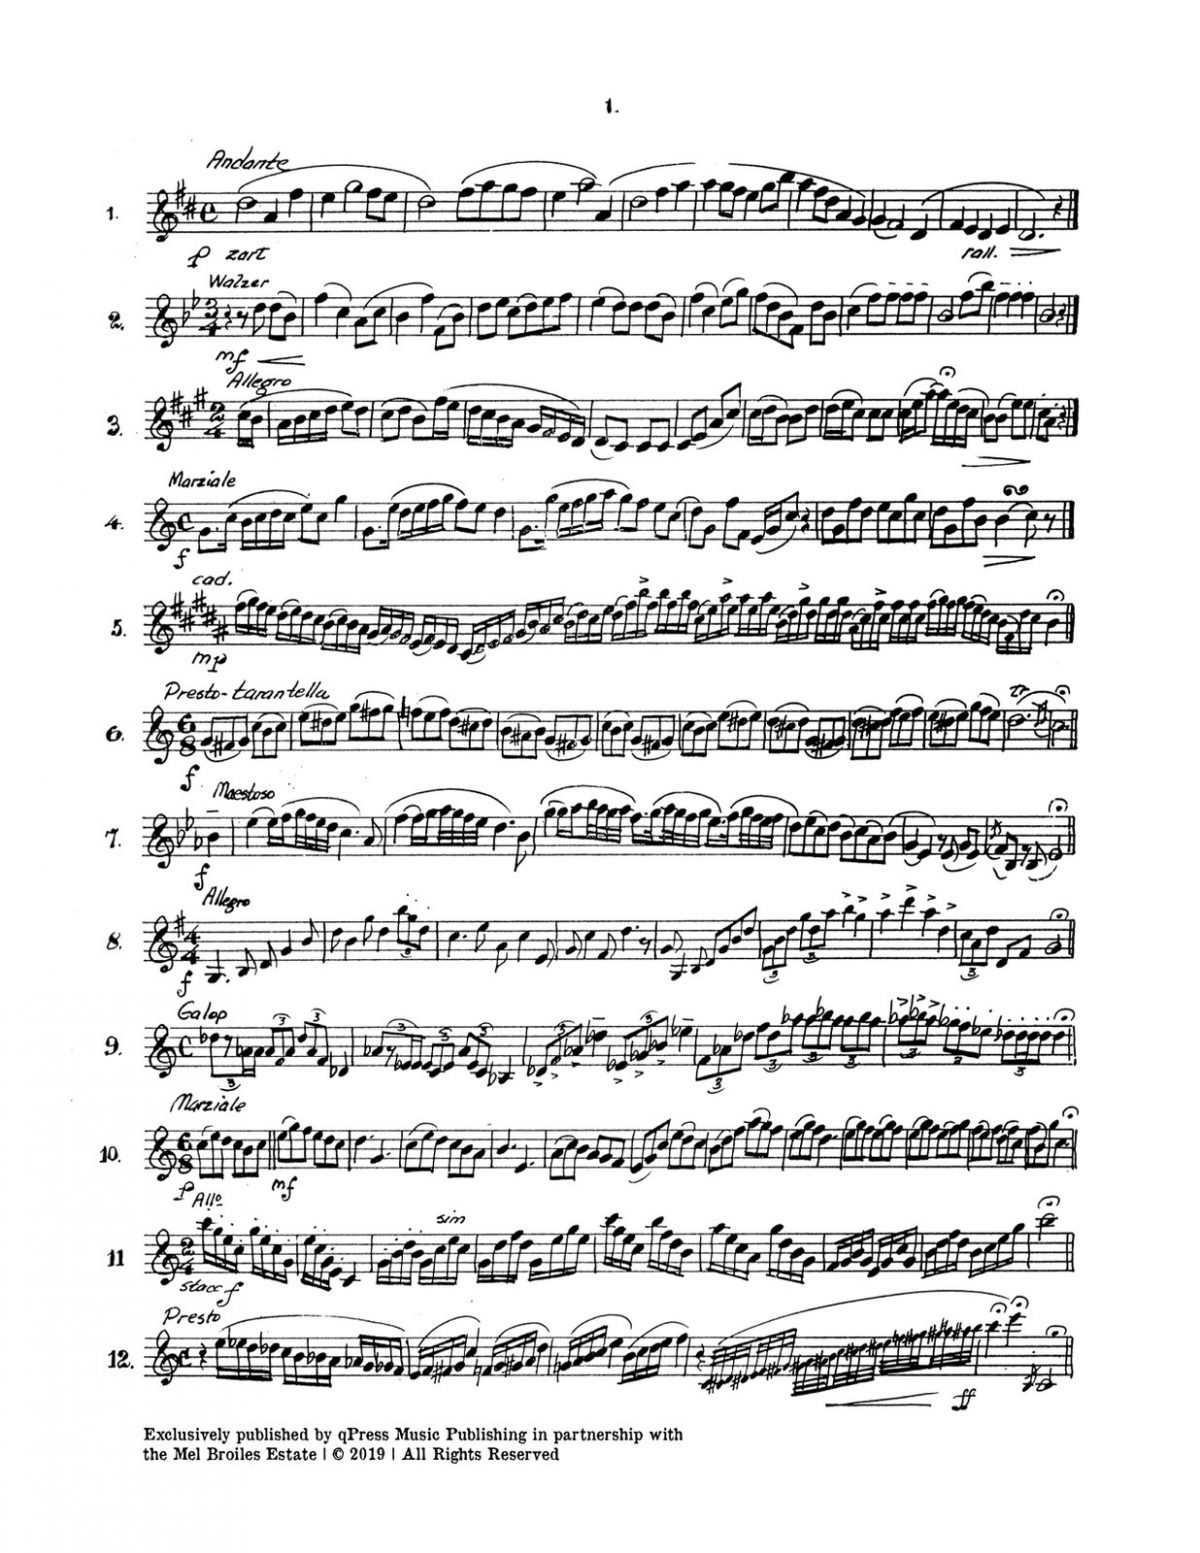 Broiles, One Liners, Mini Trumpet Studies-p03